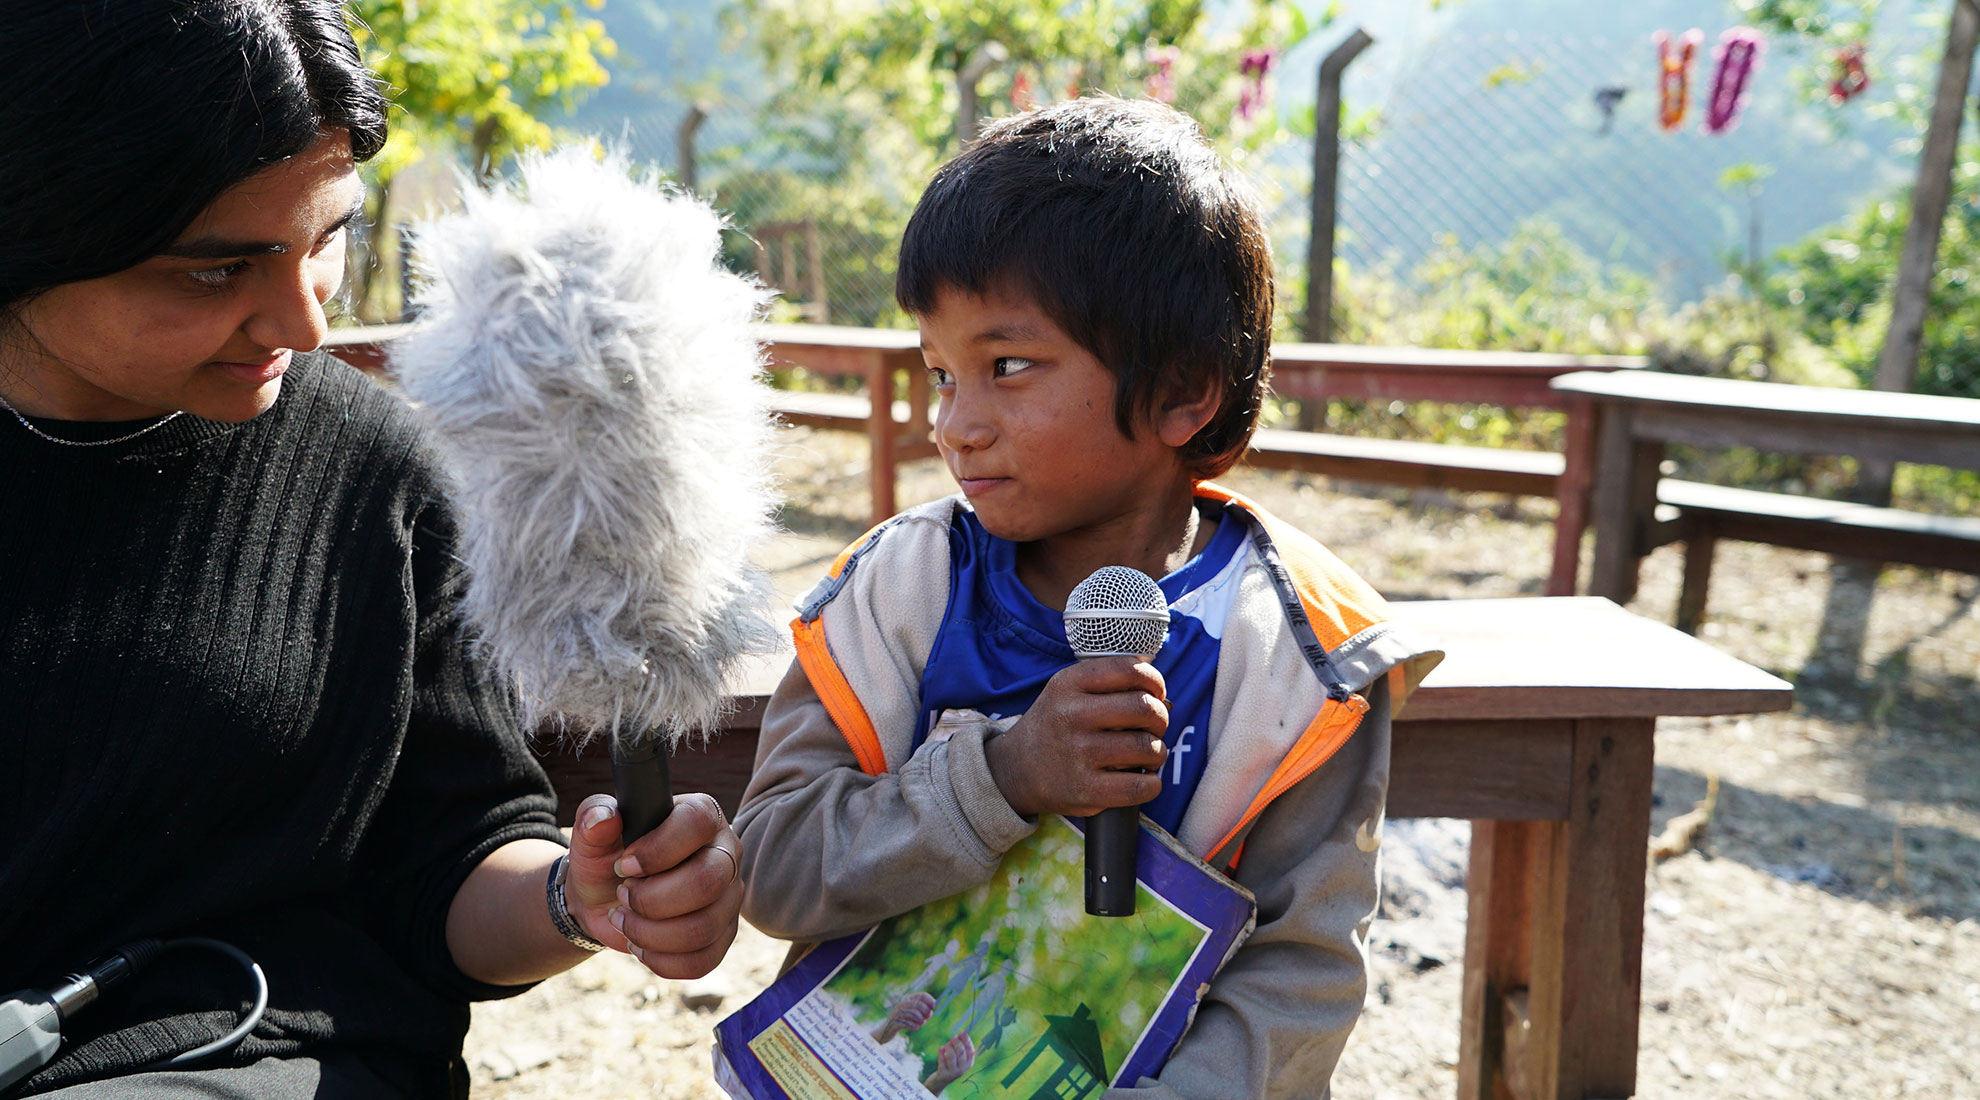 A journalist interviewing a young boy